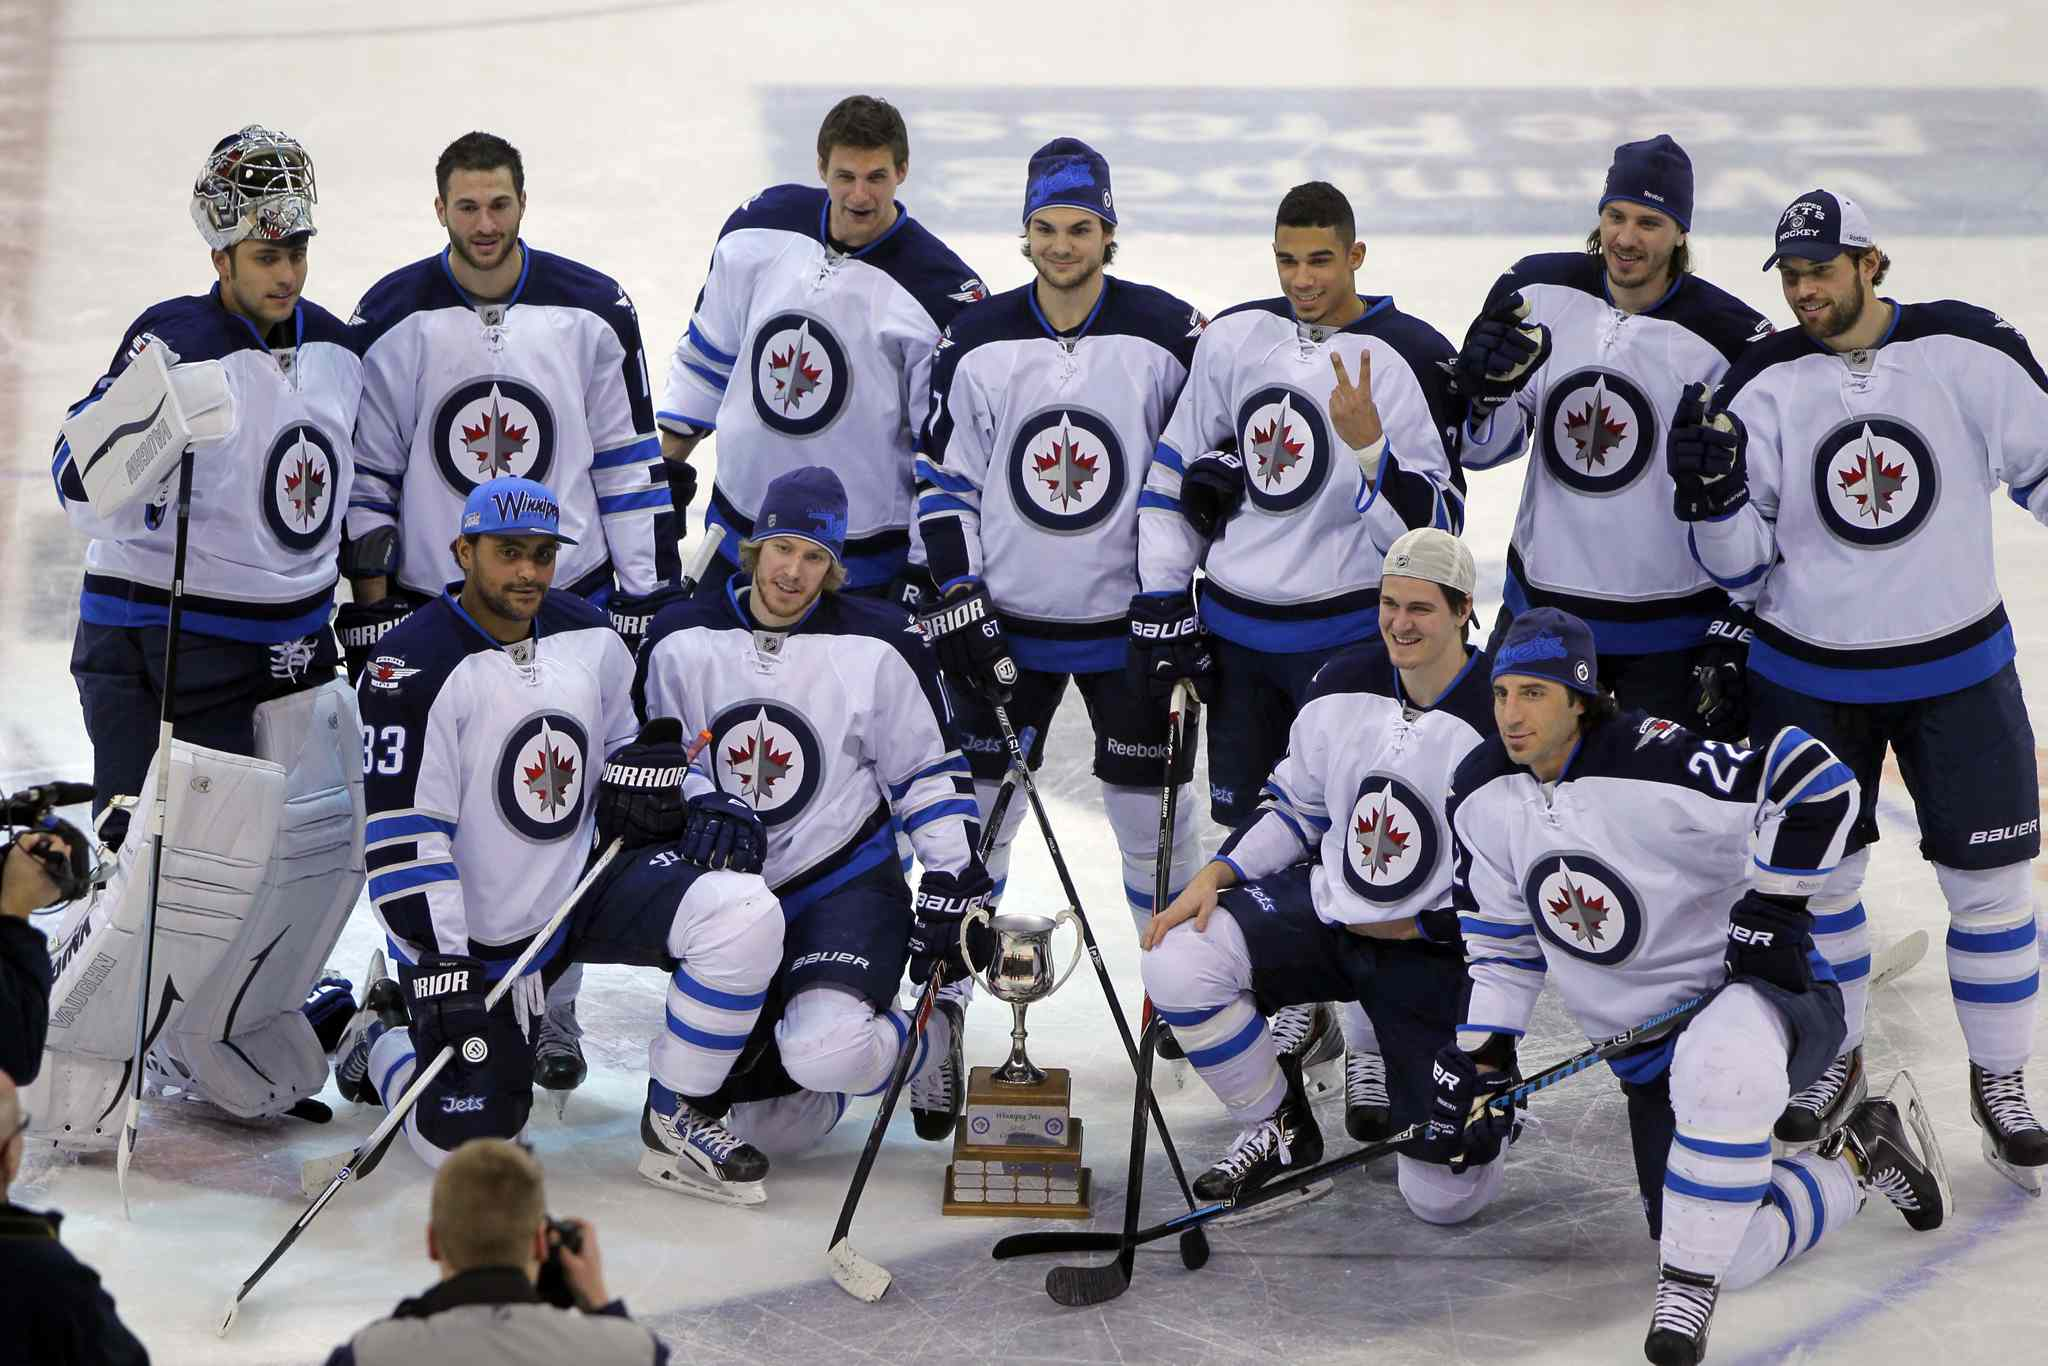 Team White poses with the trophy after winning the Winnipeg Jets Skills Competition at the MTS Centre Wednesday evening.